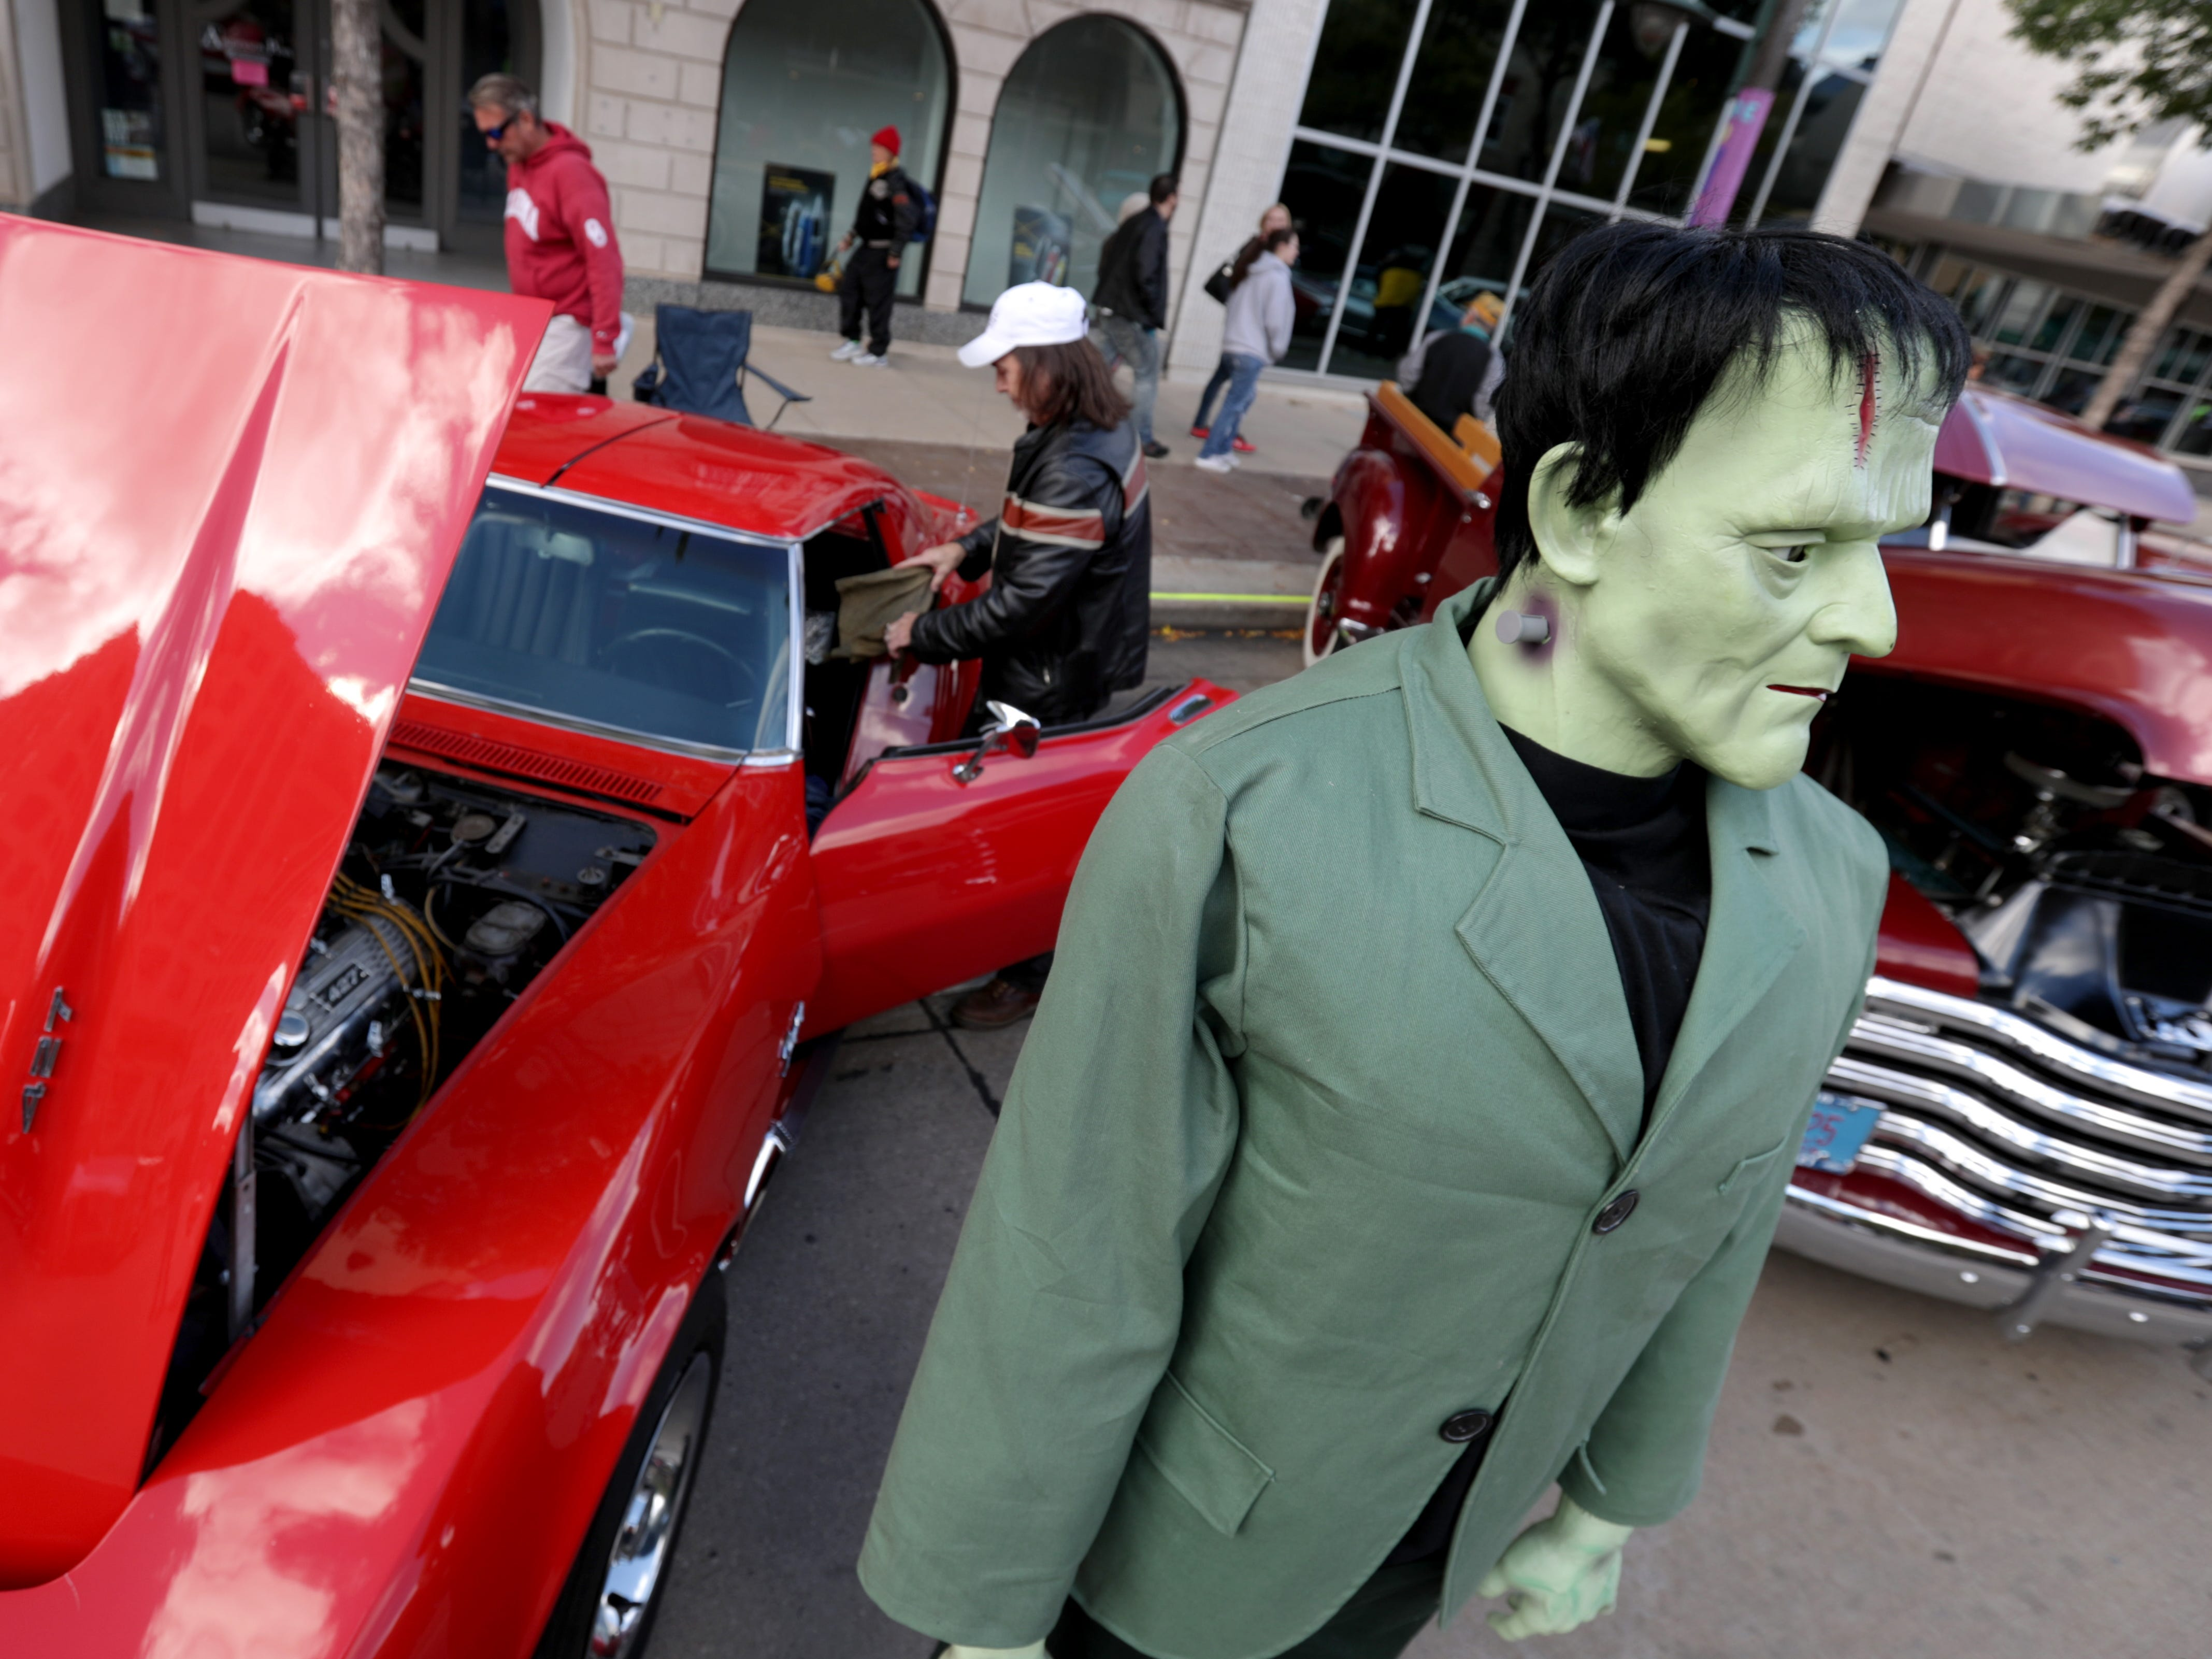 Eric Daniels sets up a a companion to his 1969 Corvette Stingray during the annual License to Cruise car show on Friday, September 28, 2018, on College Ave. in Appleton, Wis.